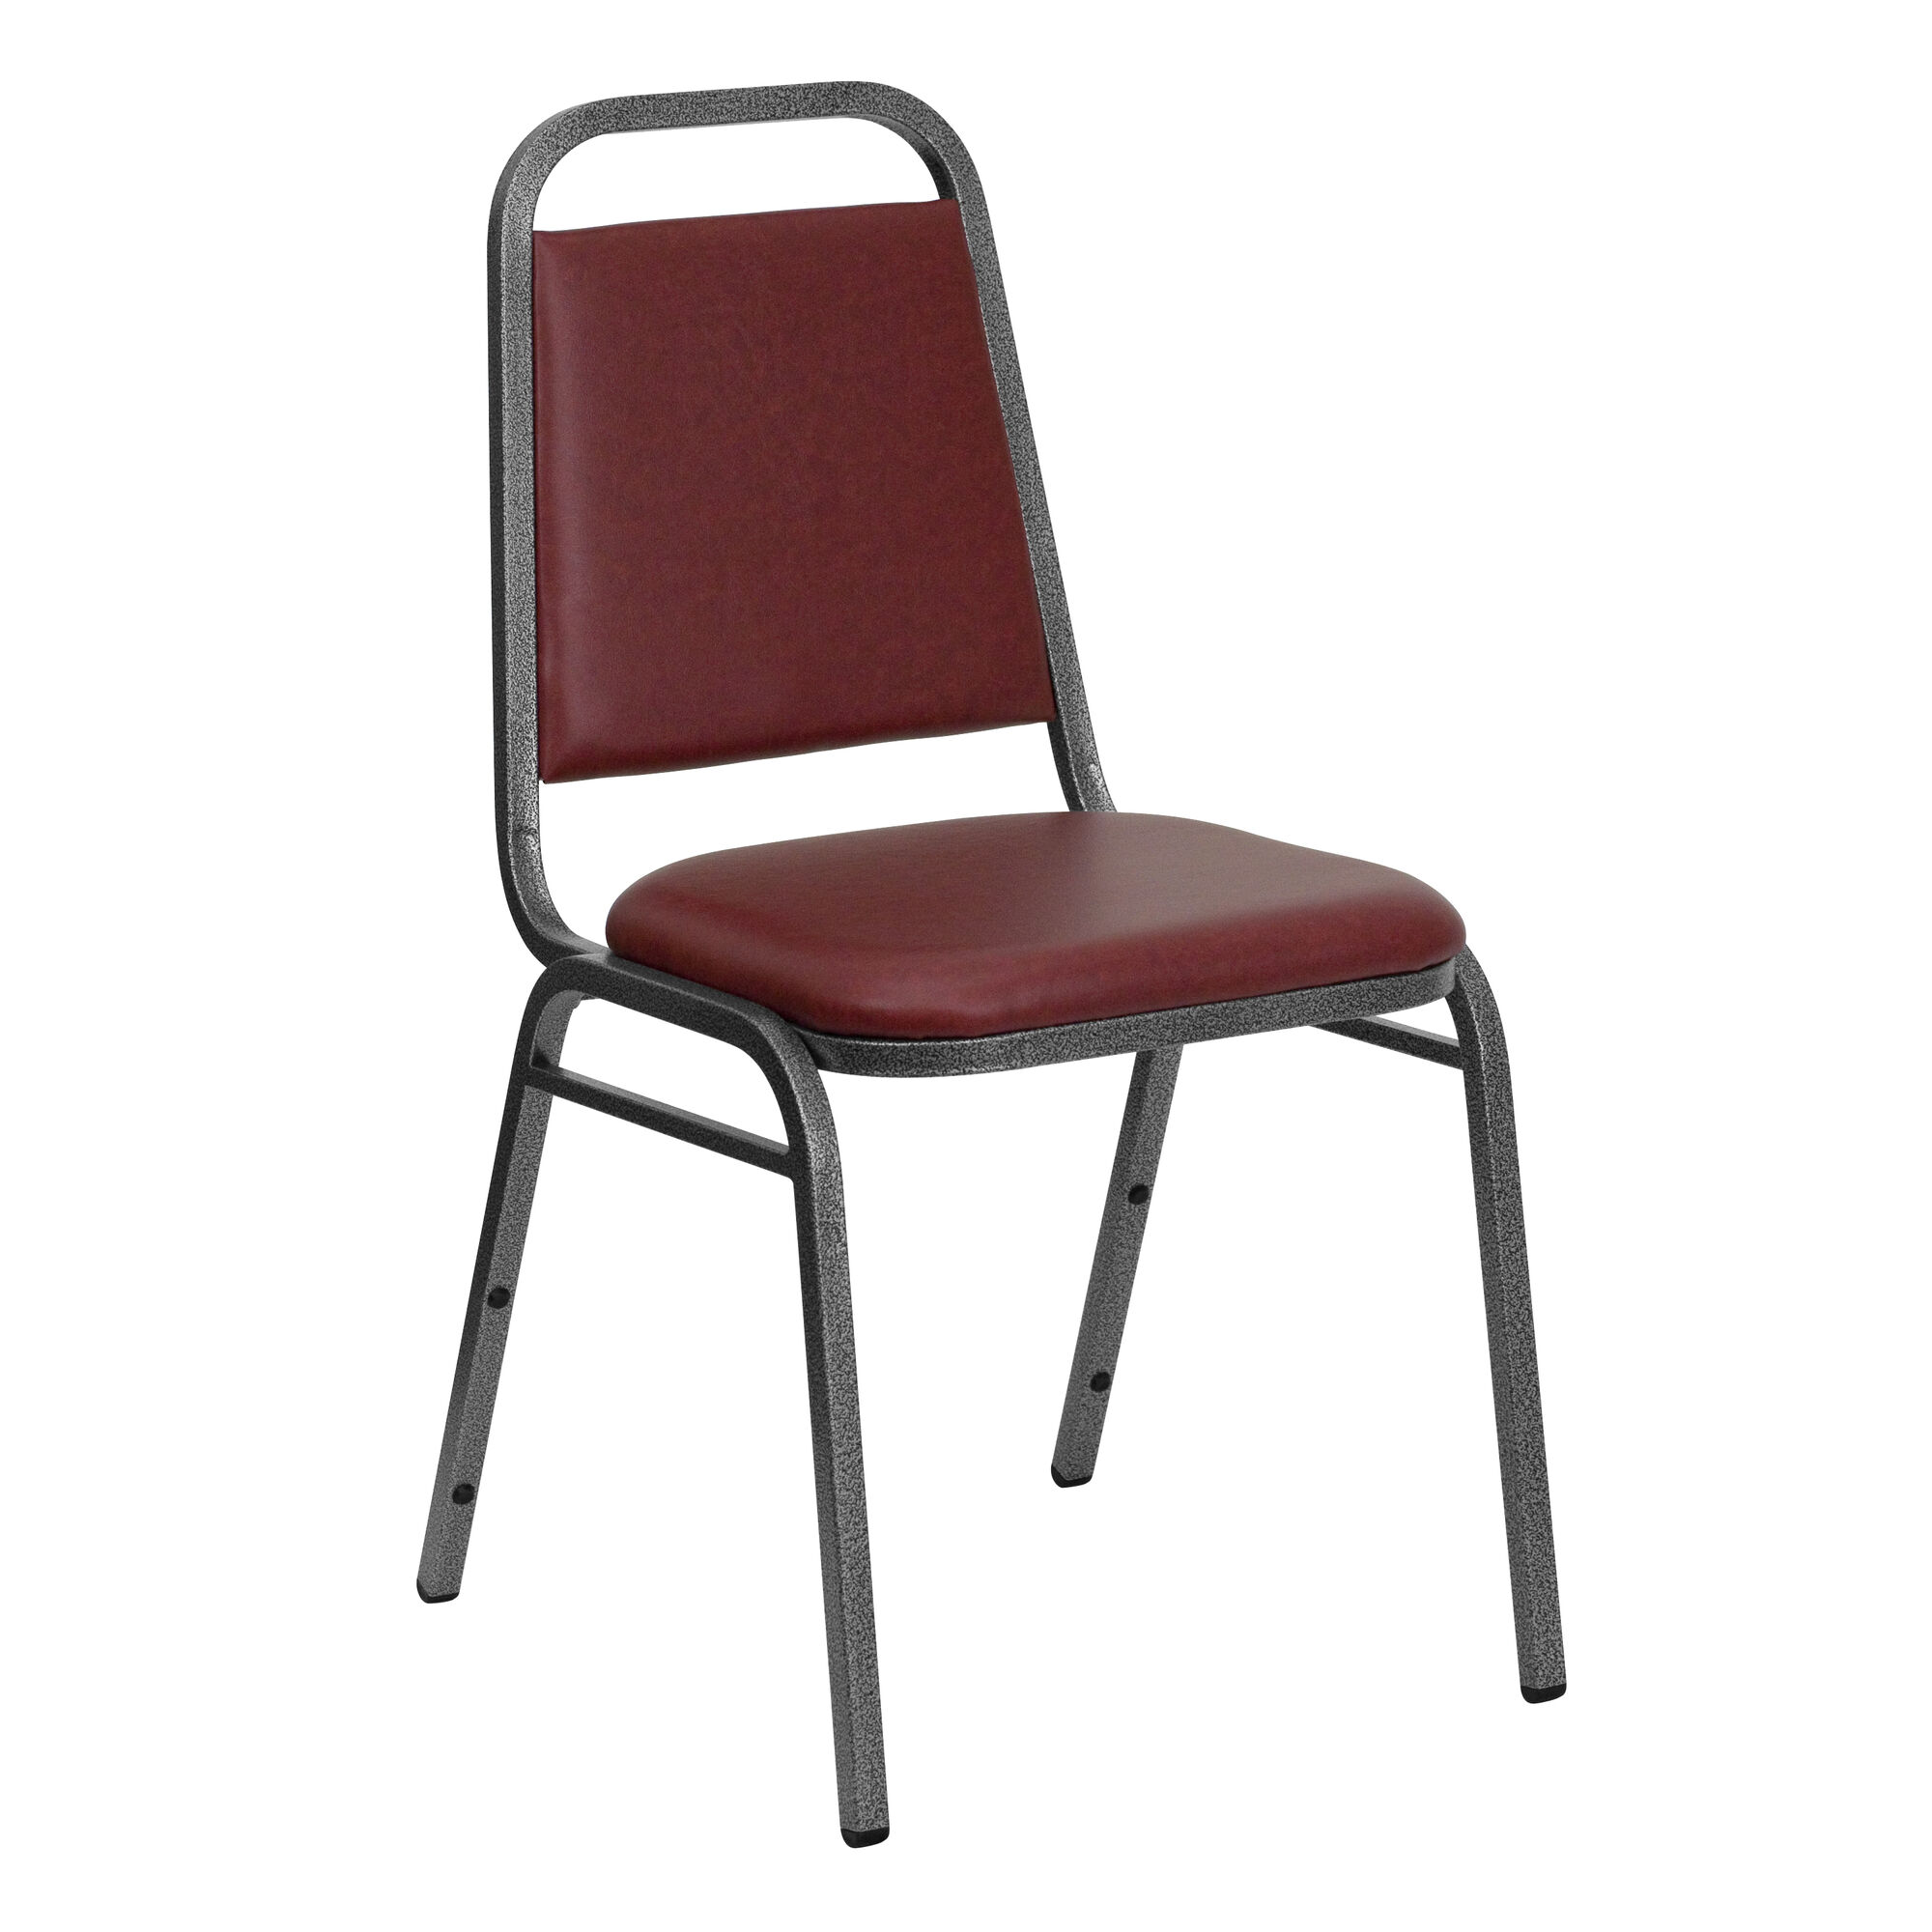 product household store big banquet chair shopping bouquet series auditorium chairs online